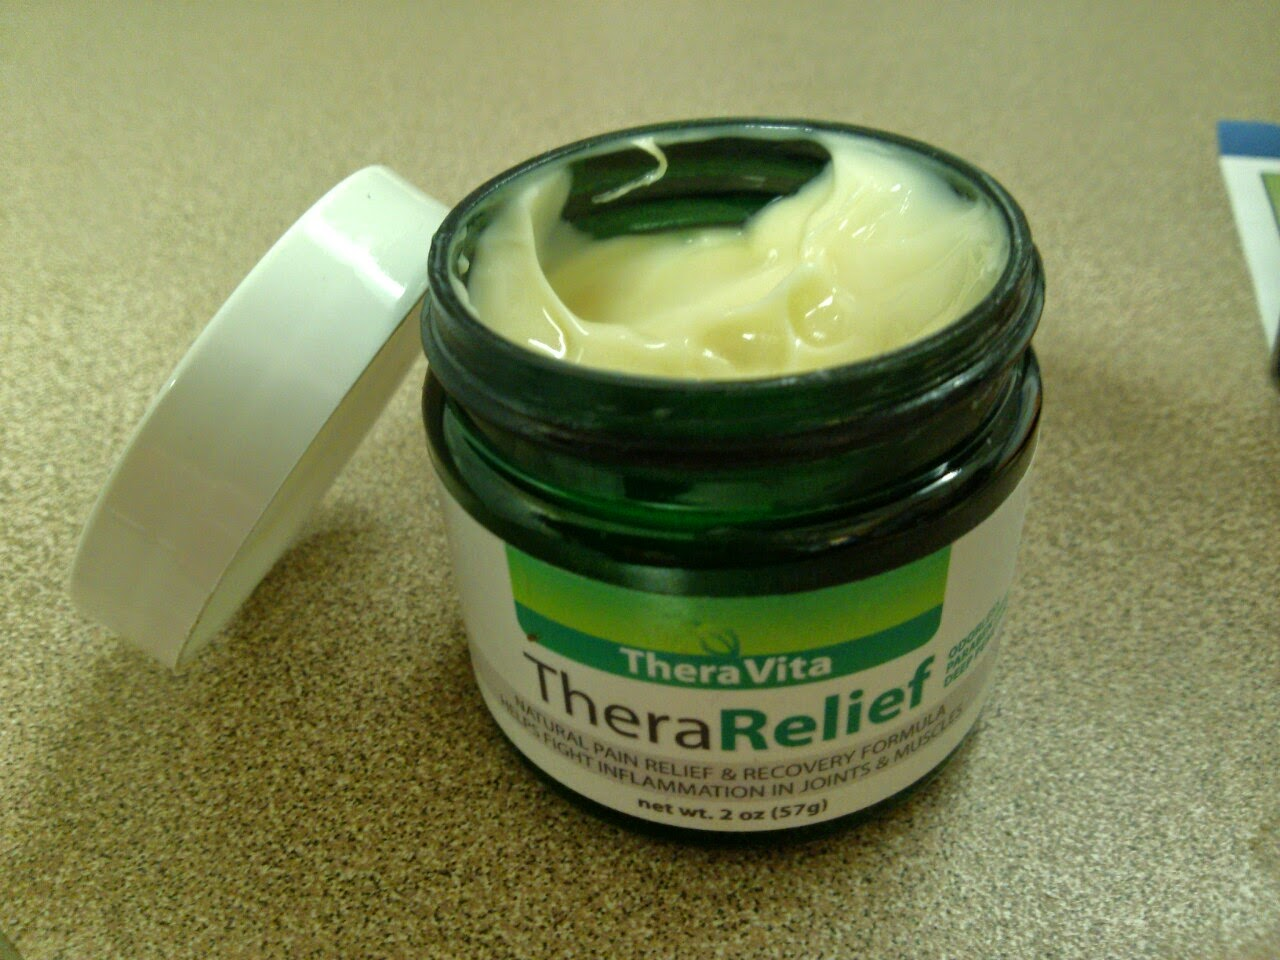 TheraRelief Natural Pain Relief Cream Review